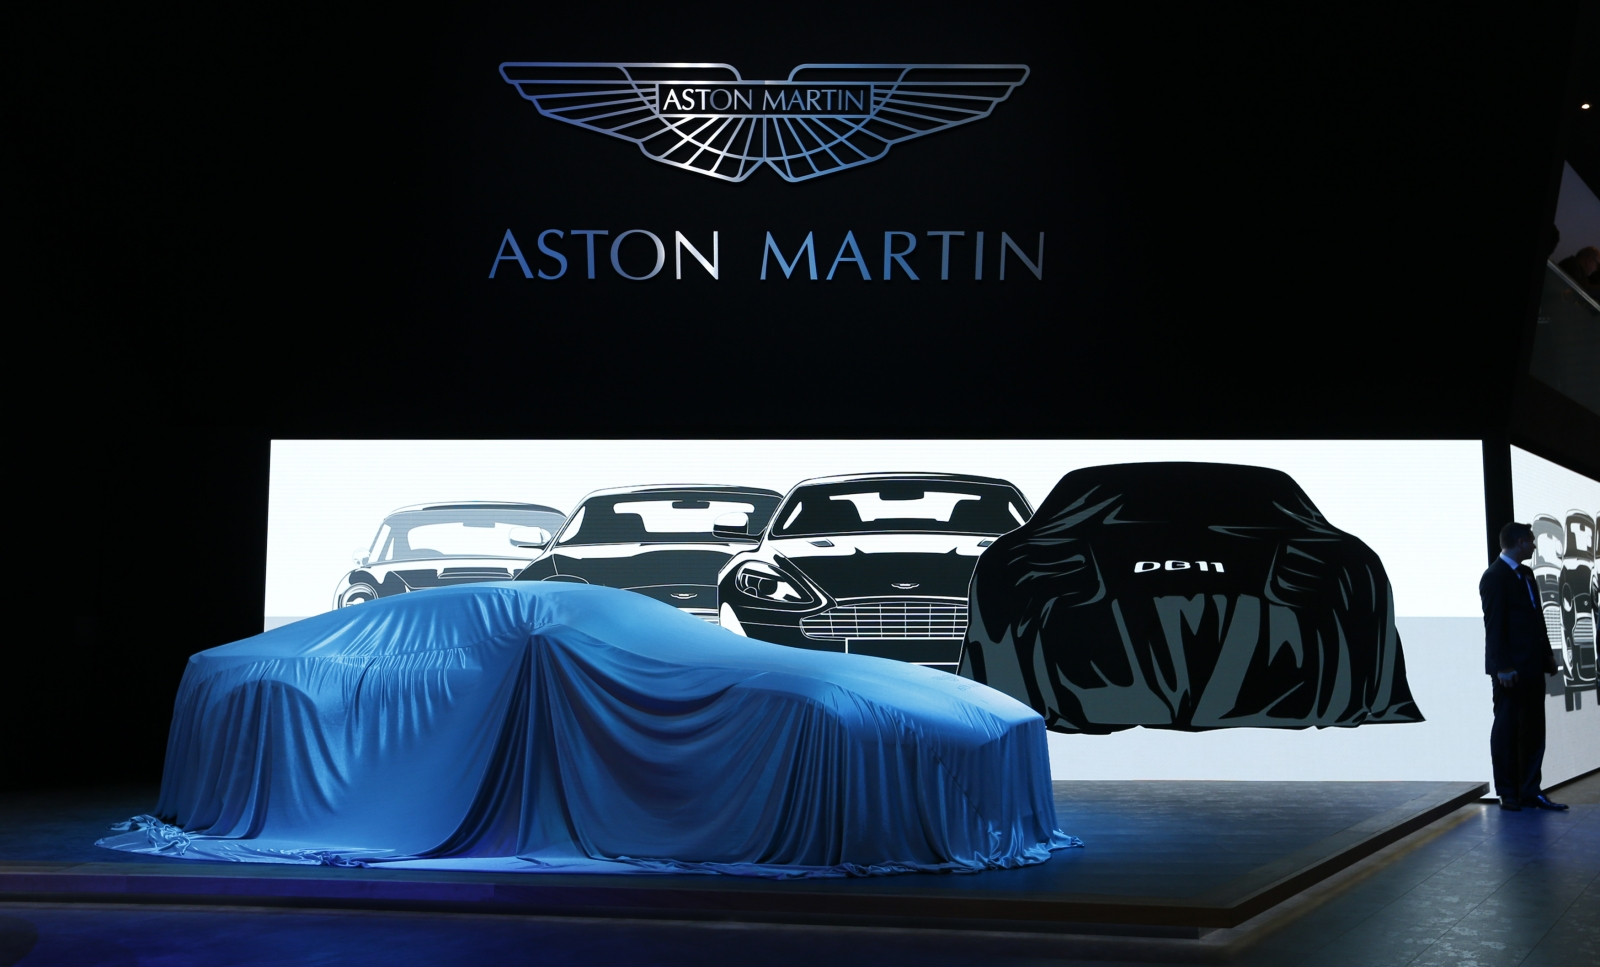 Aston Martin and Red Bull developed £2.5m 'hypercar' oversubscribed twice, weeks before unveiling